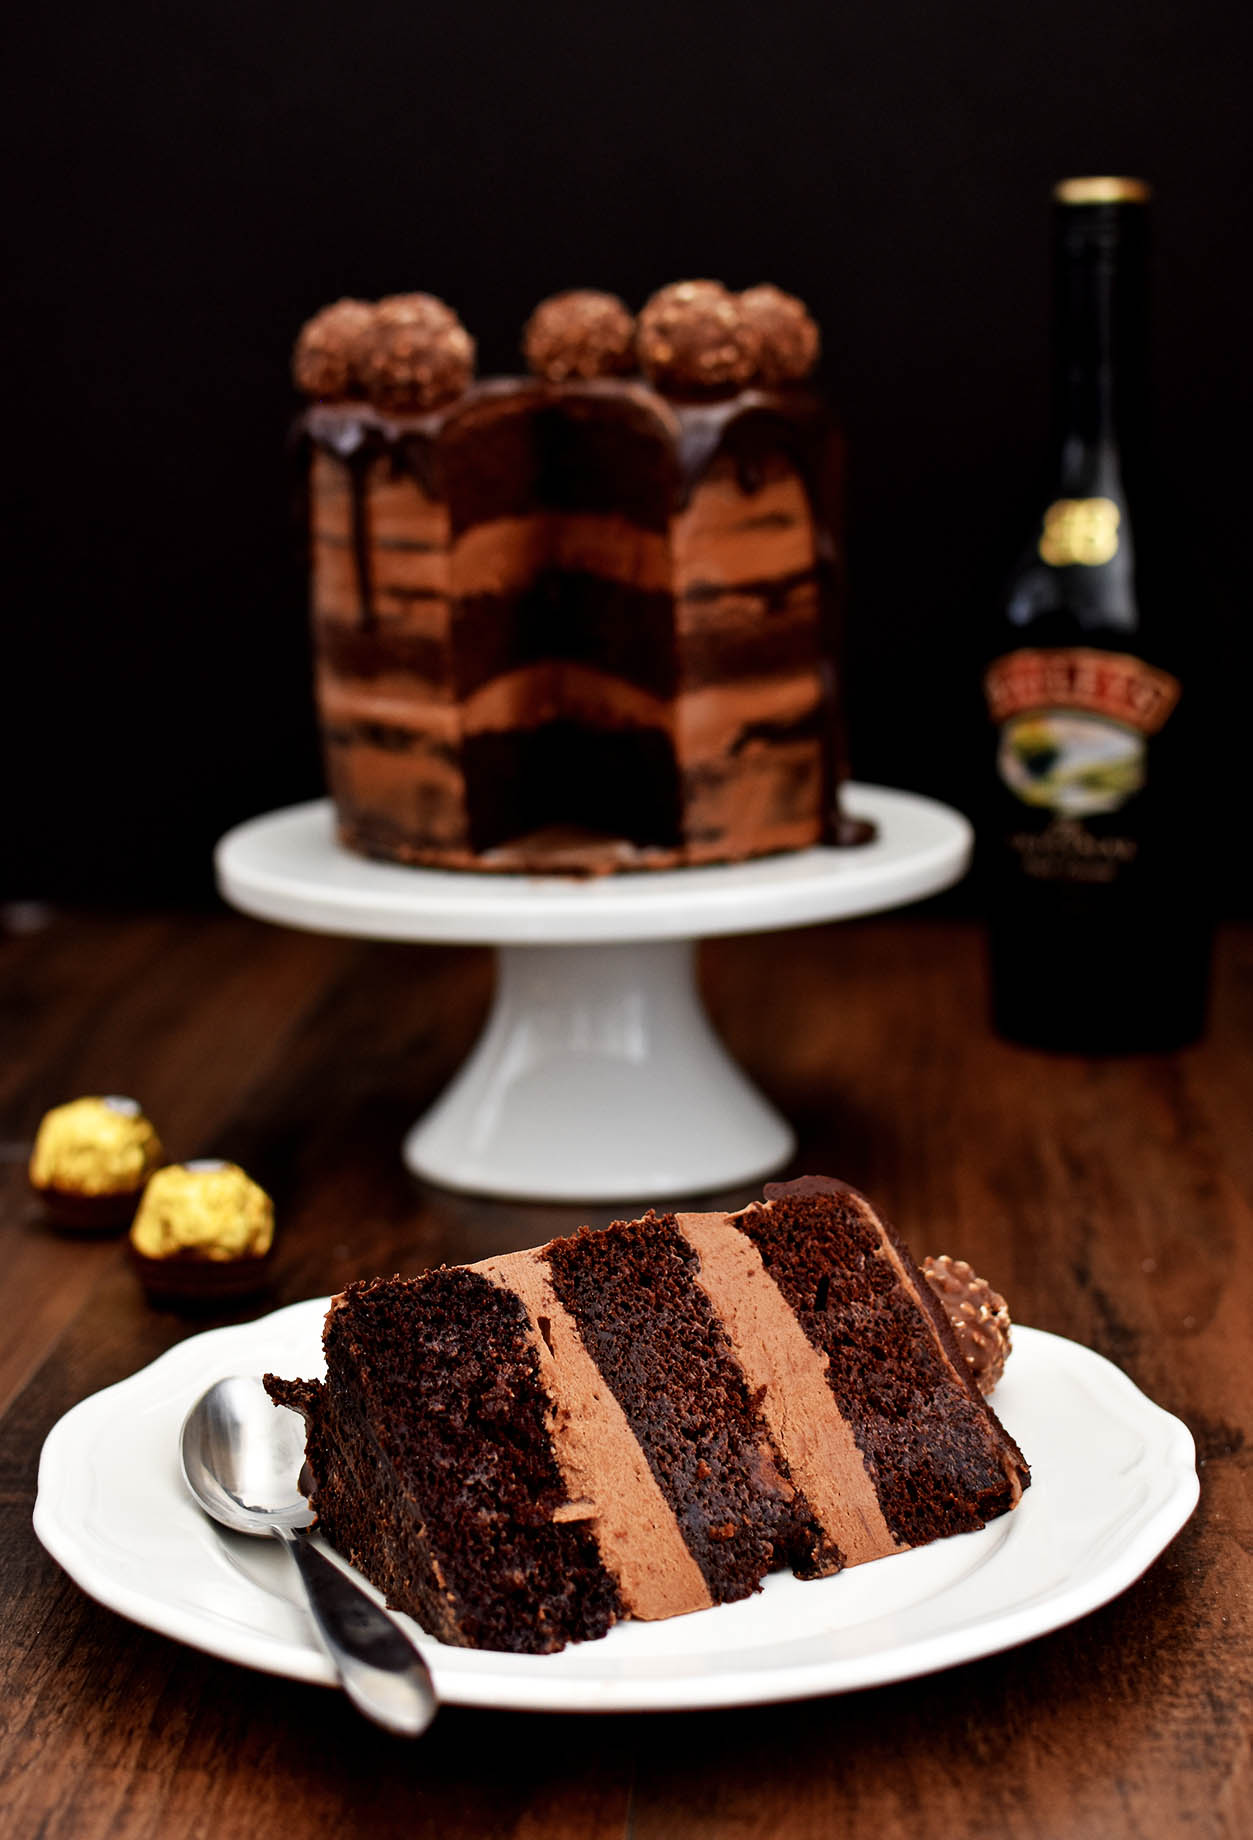 Chocolate Hazelnut Semi Naked Cake with Dark Chocolate Ganache - Pepper Delight #pepperdelightblog #recipe #cake #thanksgiving #newyear #seminakedcake #bloganniversary #hazelnutcake #ganache #holidayrecipes #chocolatecake #party #festivals